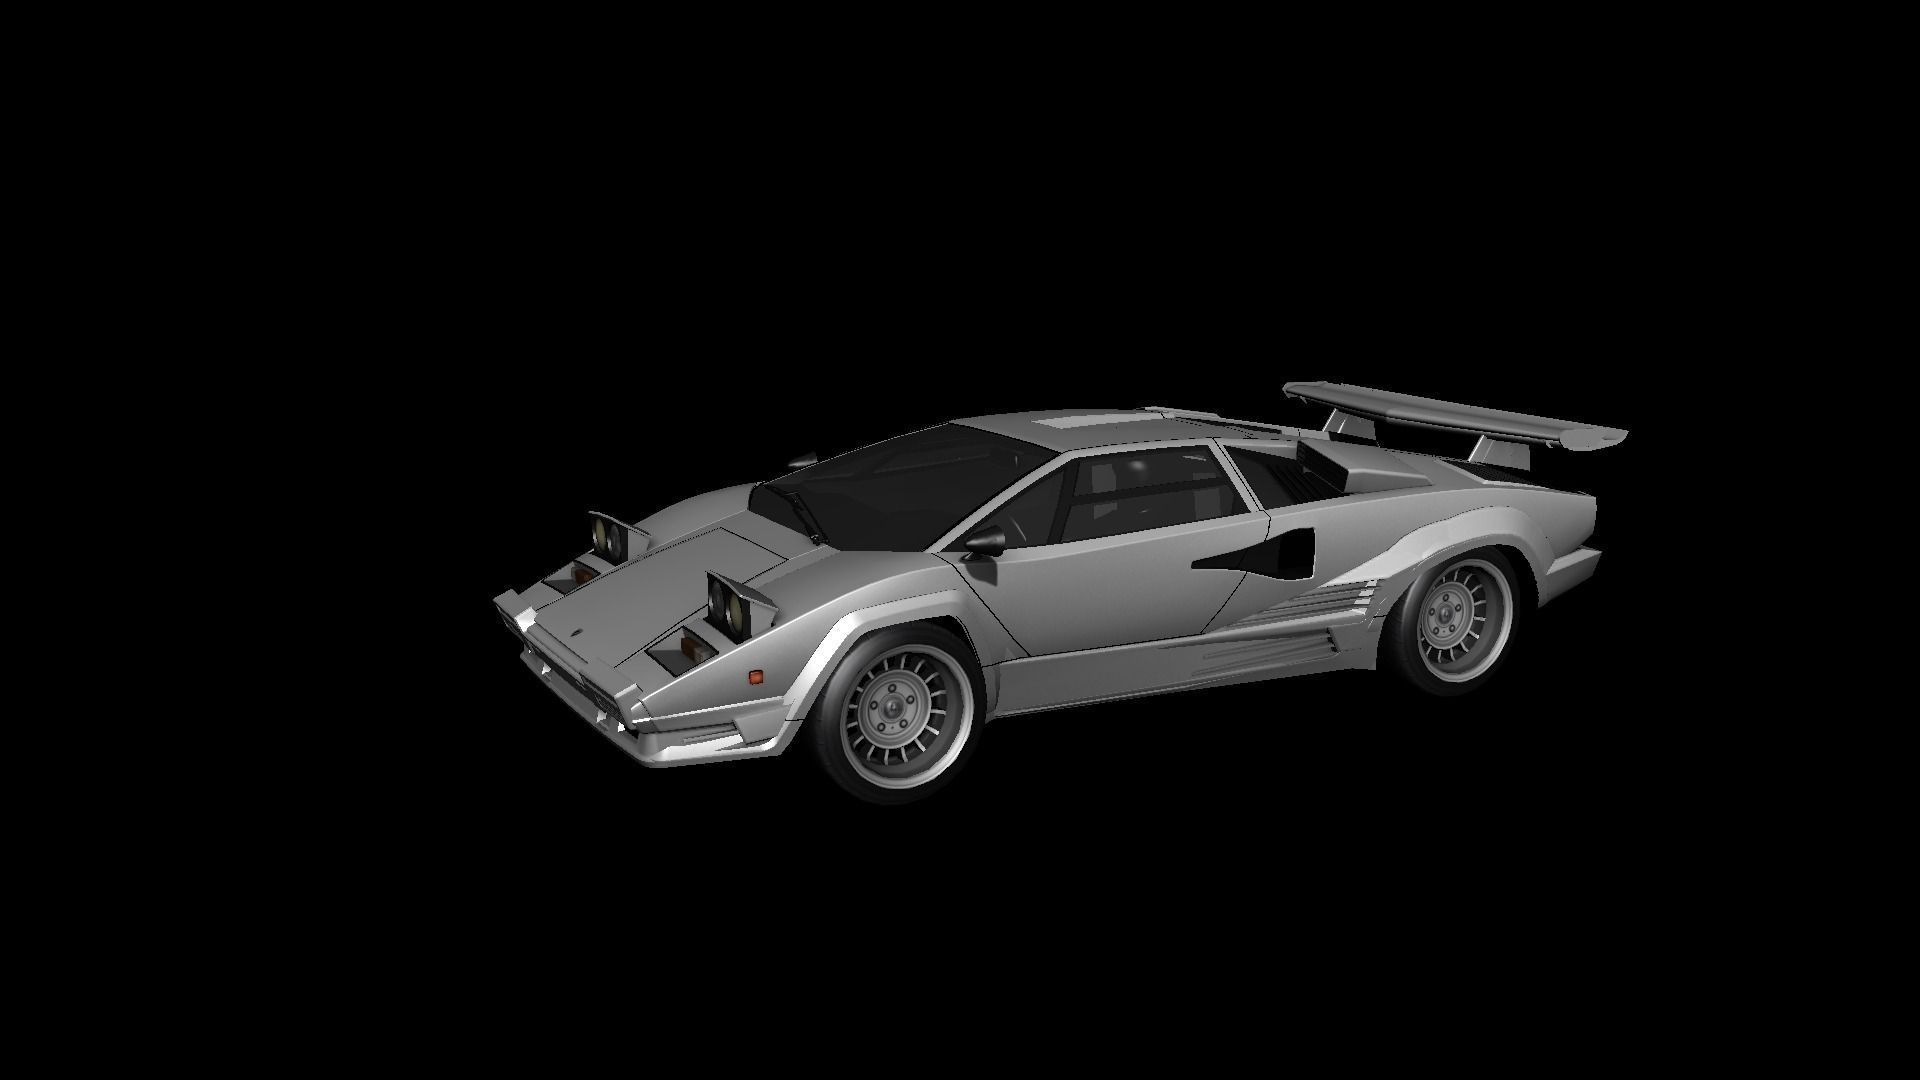 lamborghini countach lp400 1975 3d model game ready tga. Black Bedroom Furniture Sets. Home Design Ideas